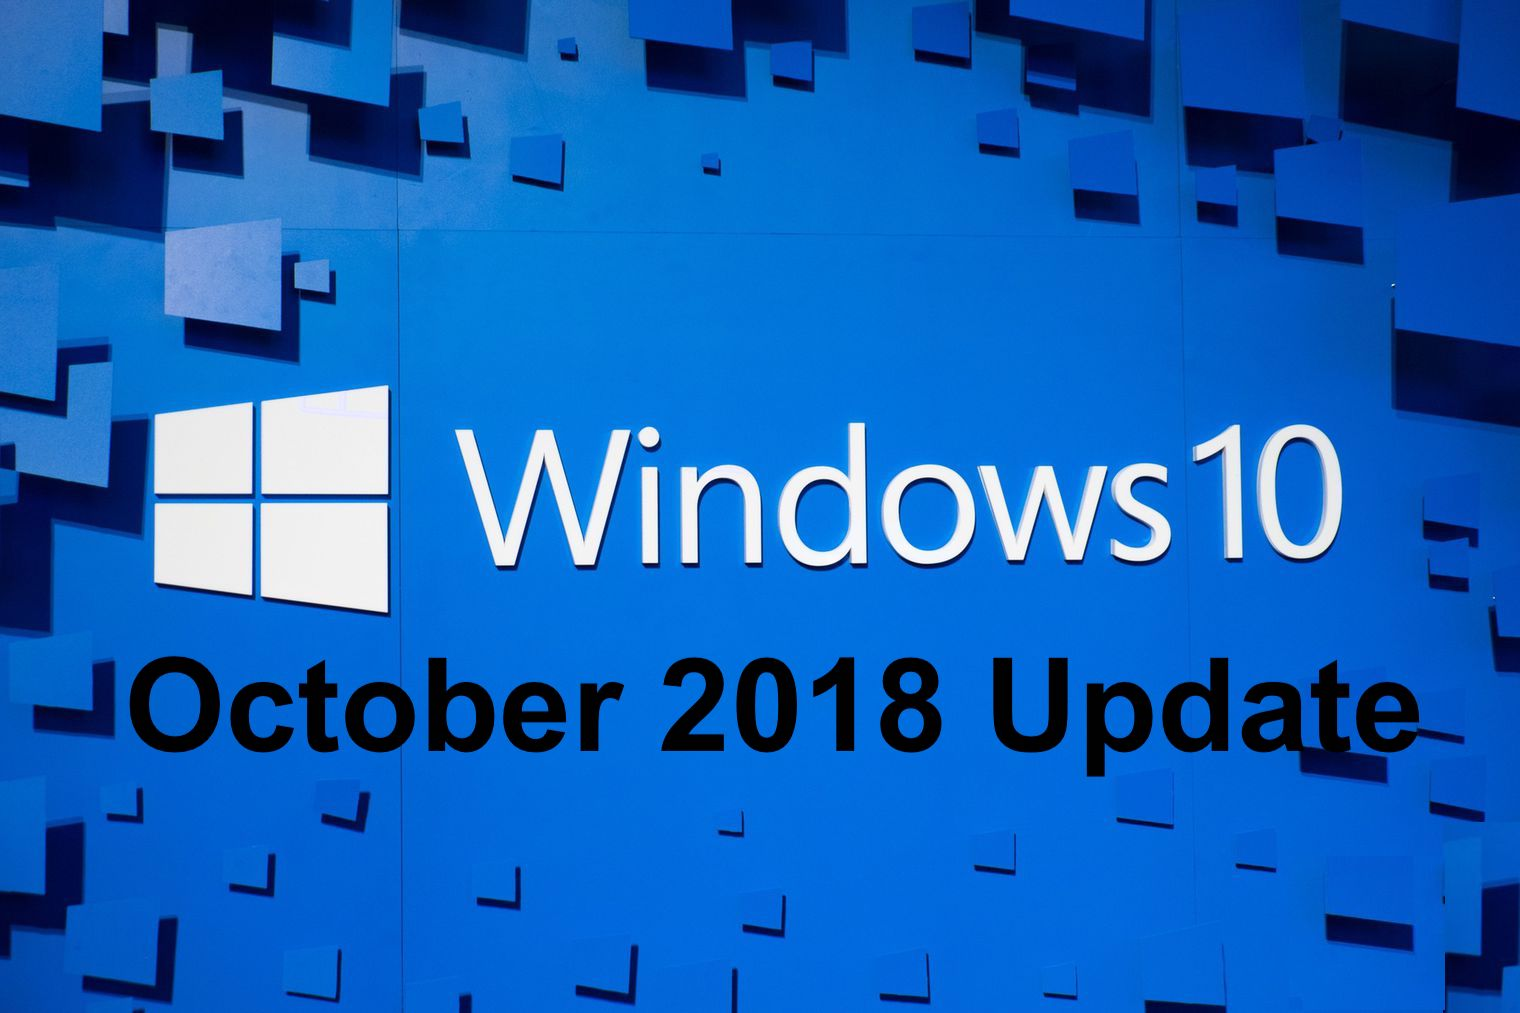 Microsoft resumes Windows 10 October 2018 rollout update